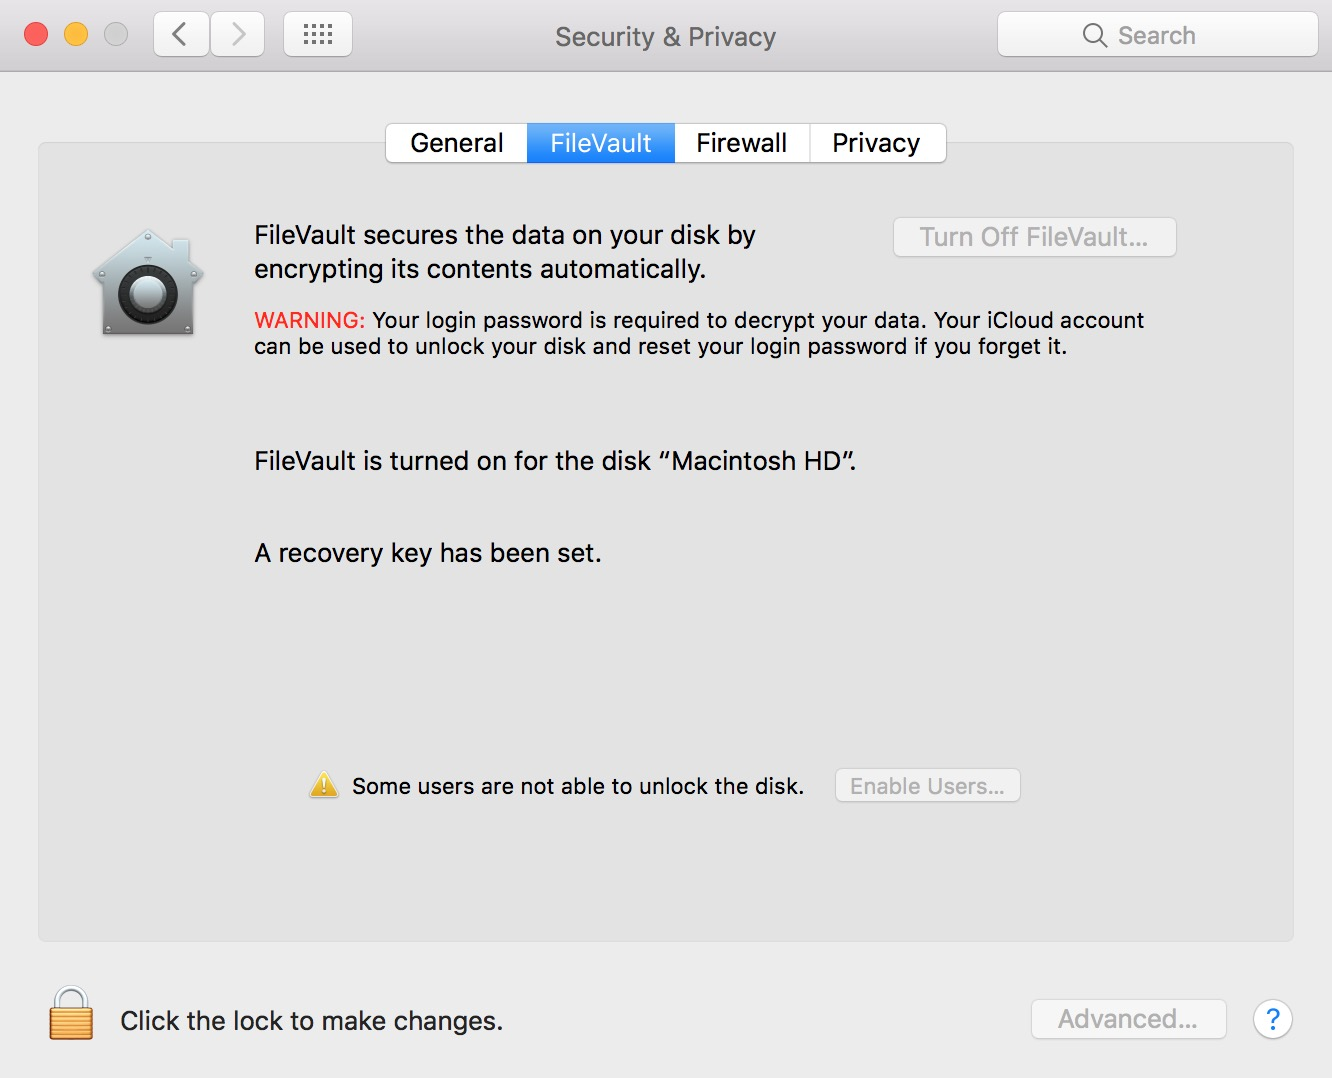 Use FileVault on your Mac to encrypt all of your data